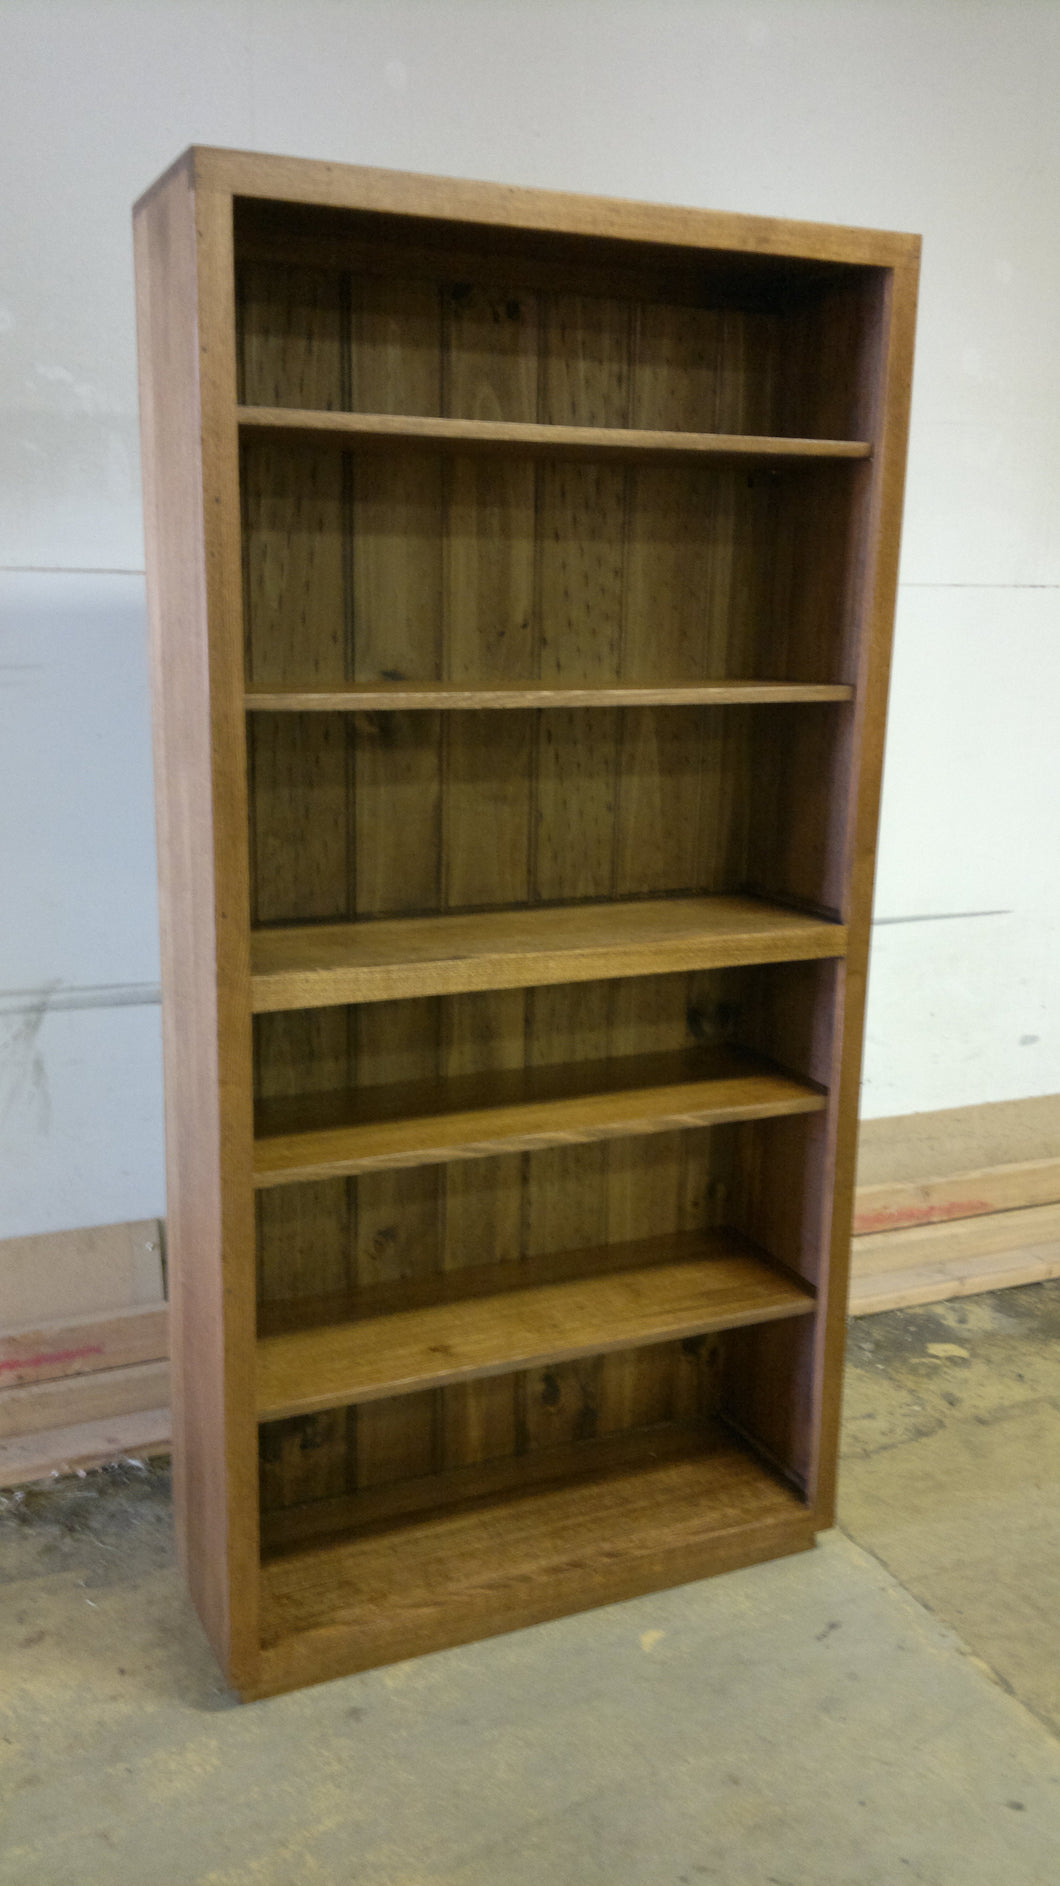 Recycled Australian Timber Bookshelf